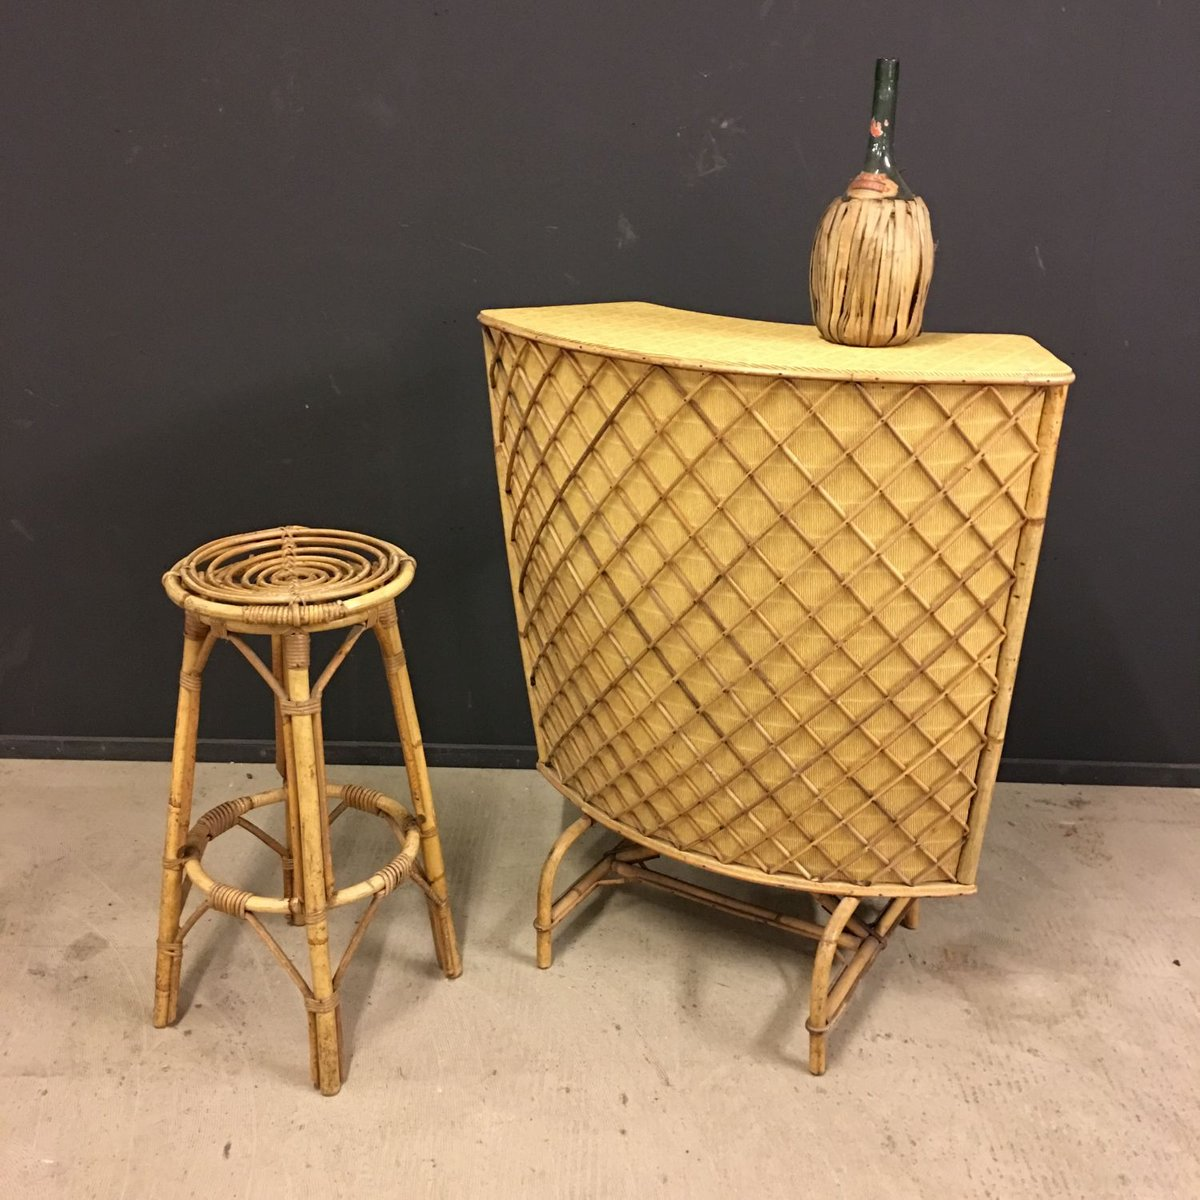 meuble de bar tiki vintage en bambou avec tabouret 1950s en vente sur pamono. Black Bedroom Furniture Sets. Home Design Ideas